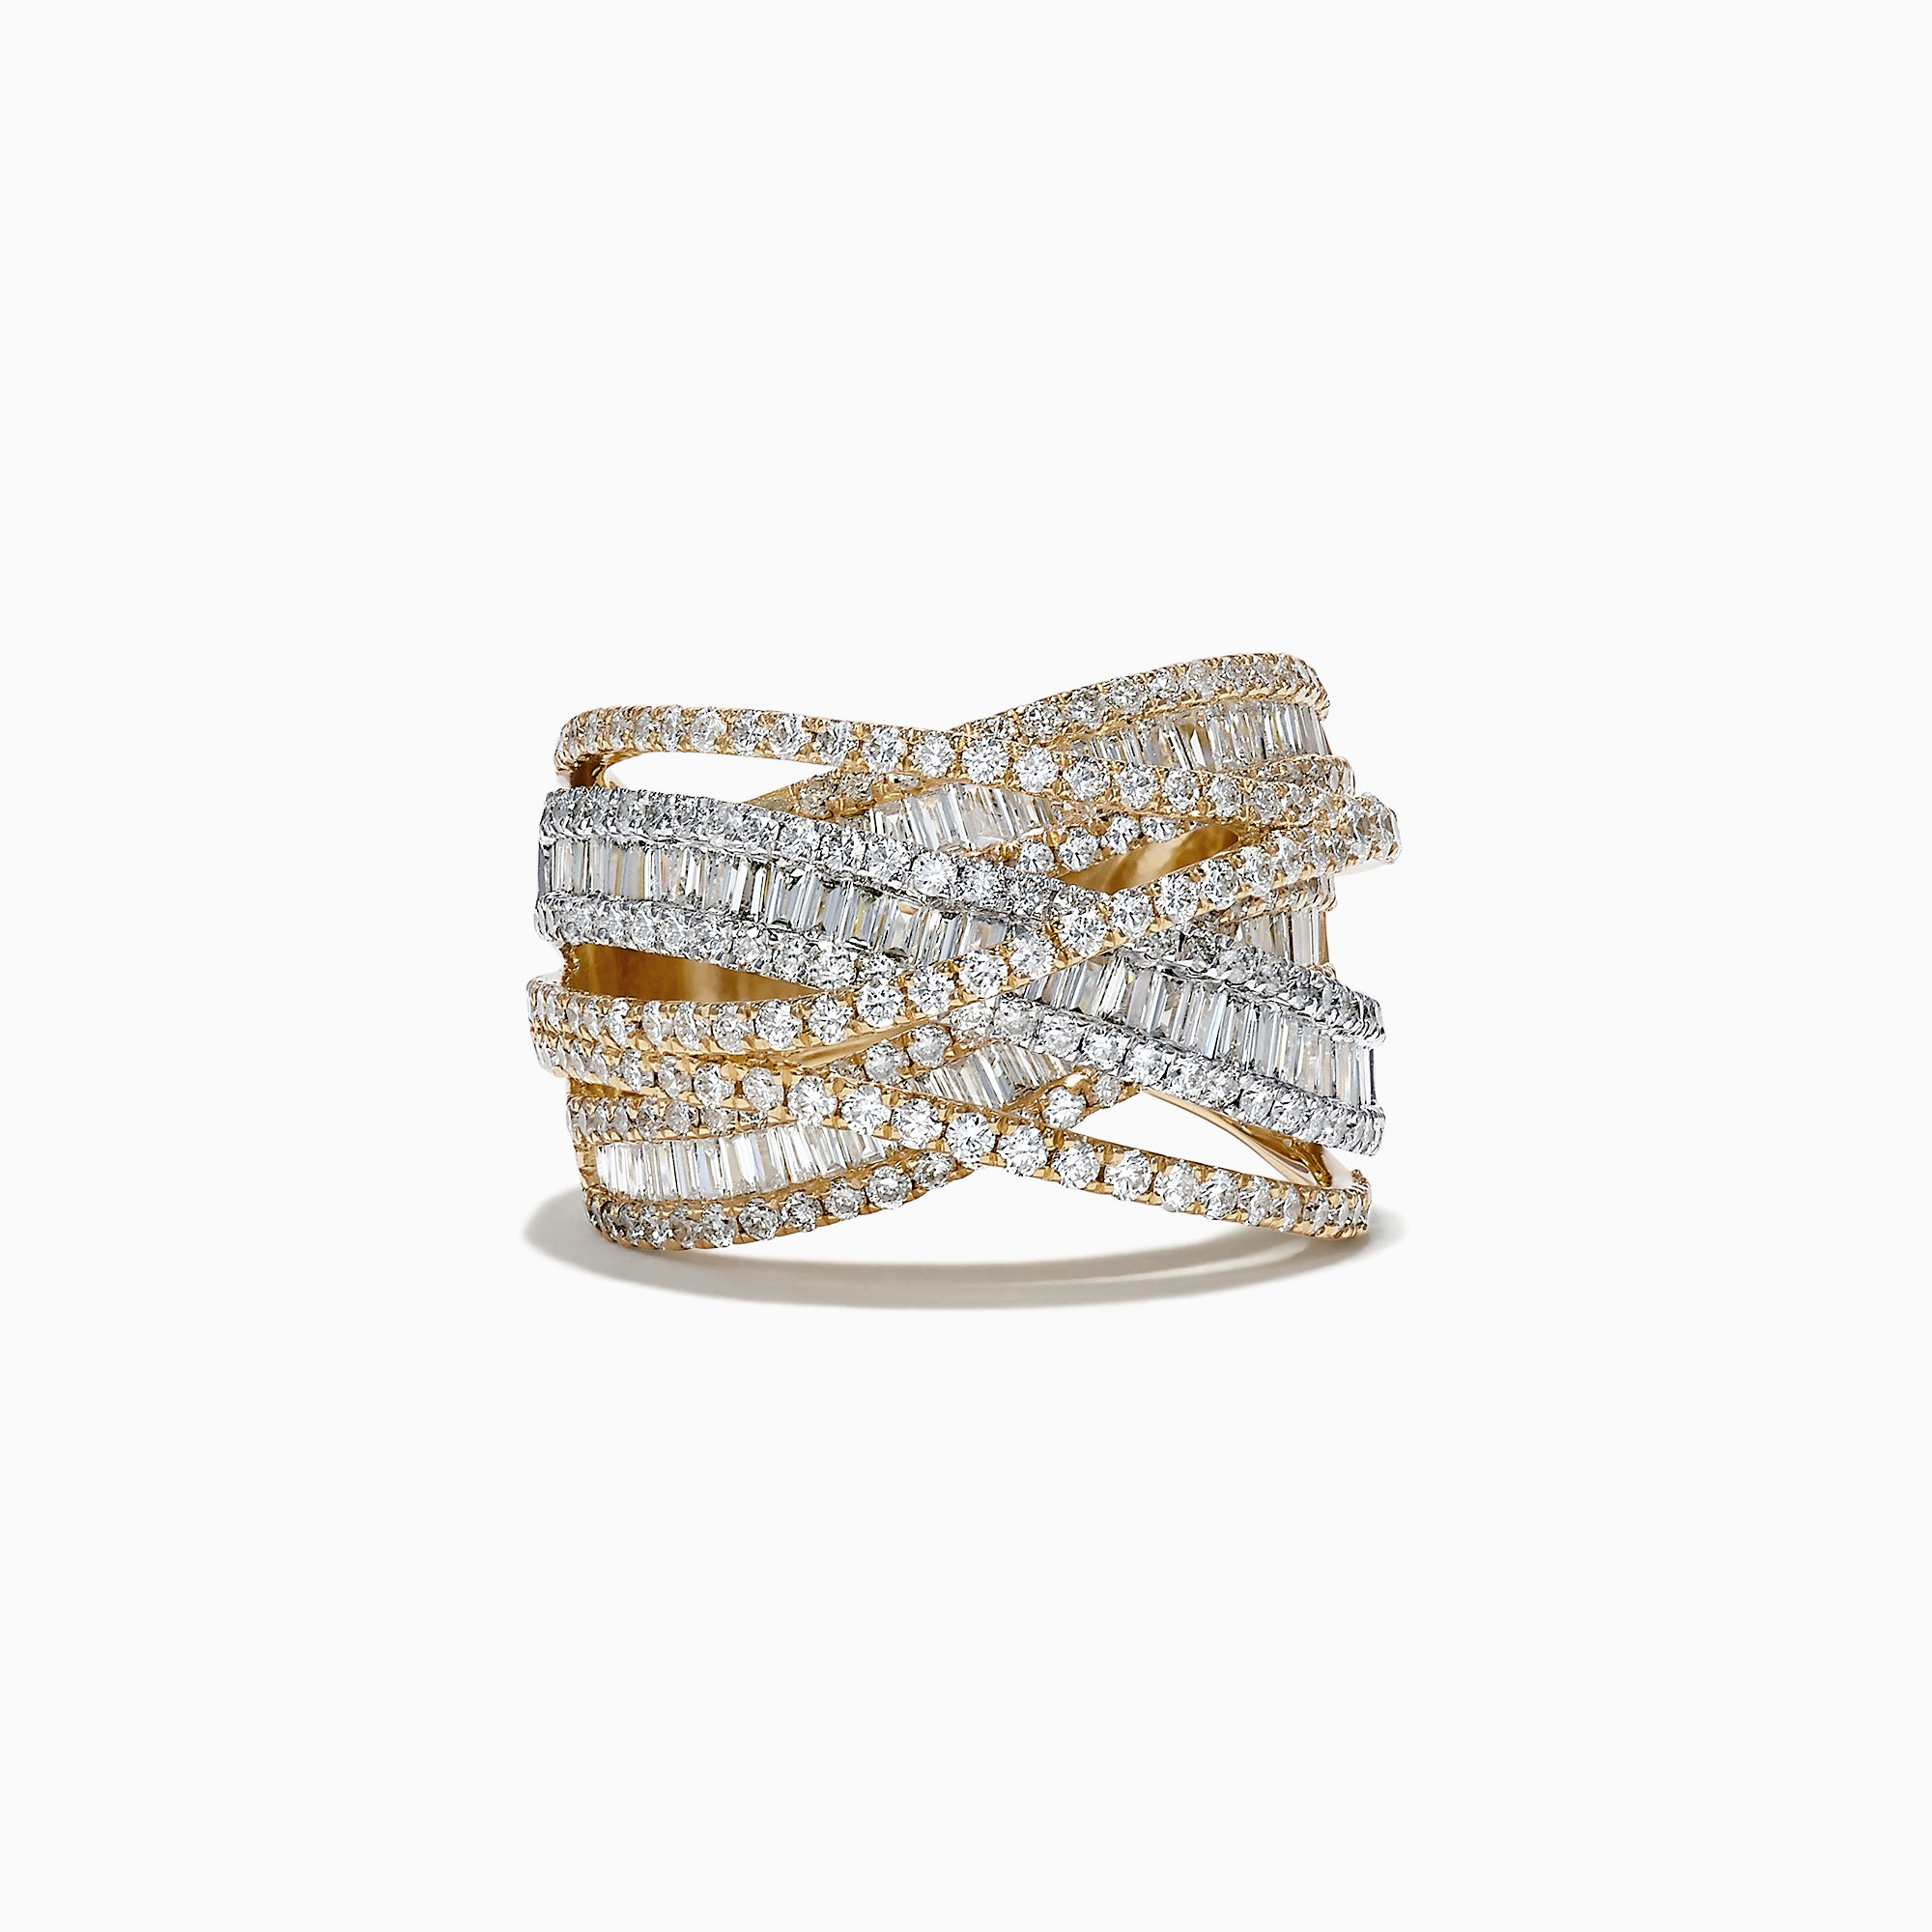 Effy Duo 14K White and Yellow Gold Diamond Crossover Ring, 2.75 TCW